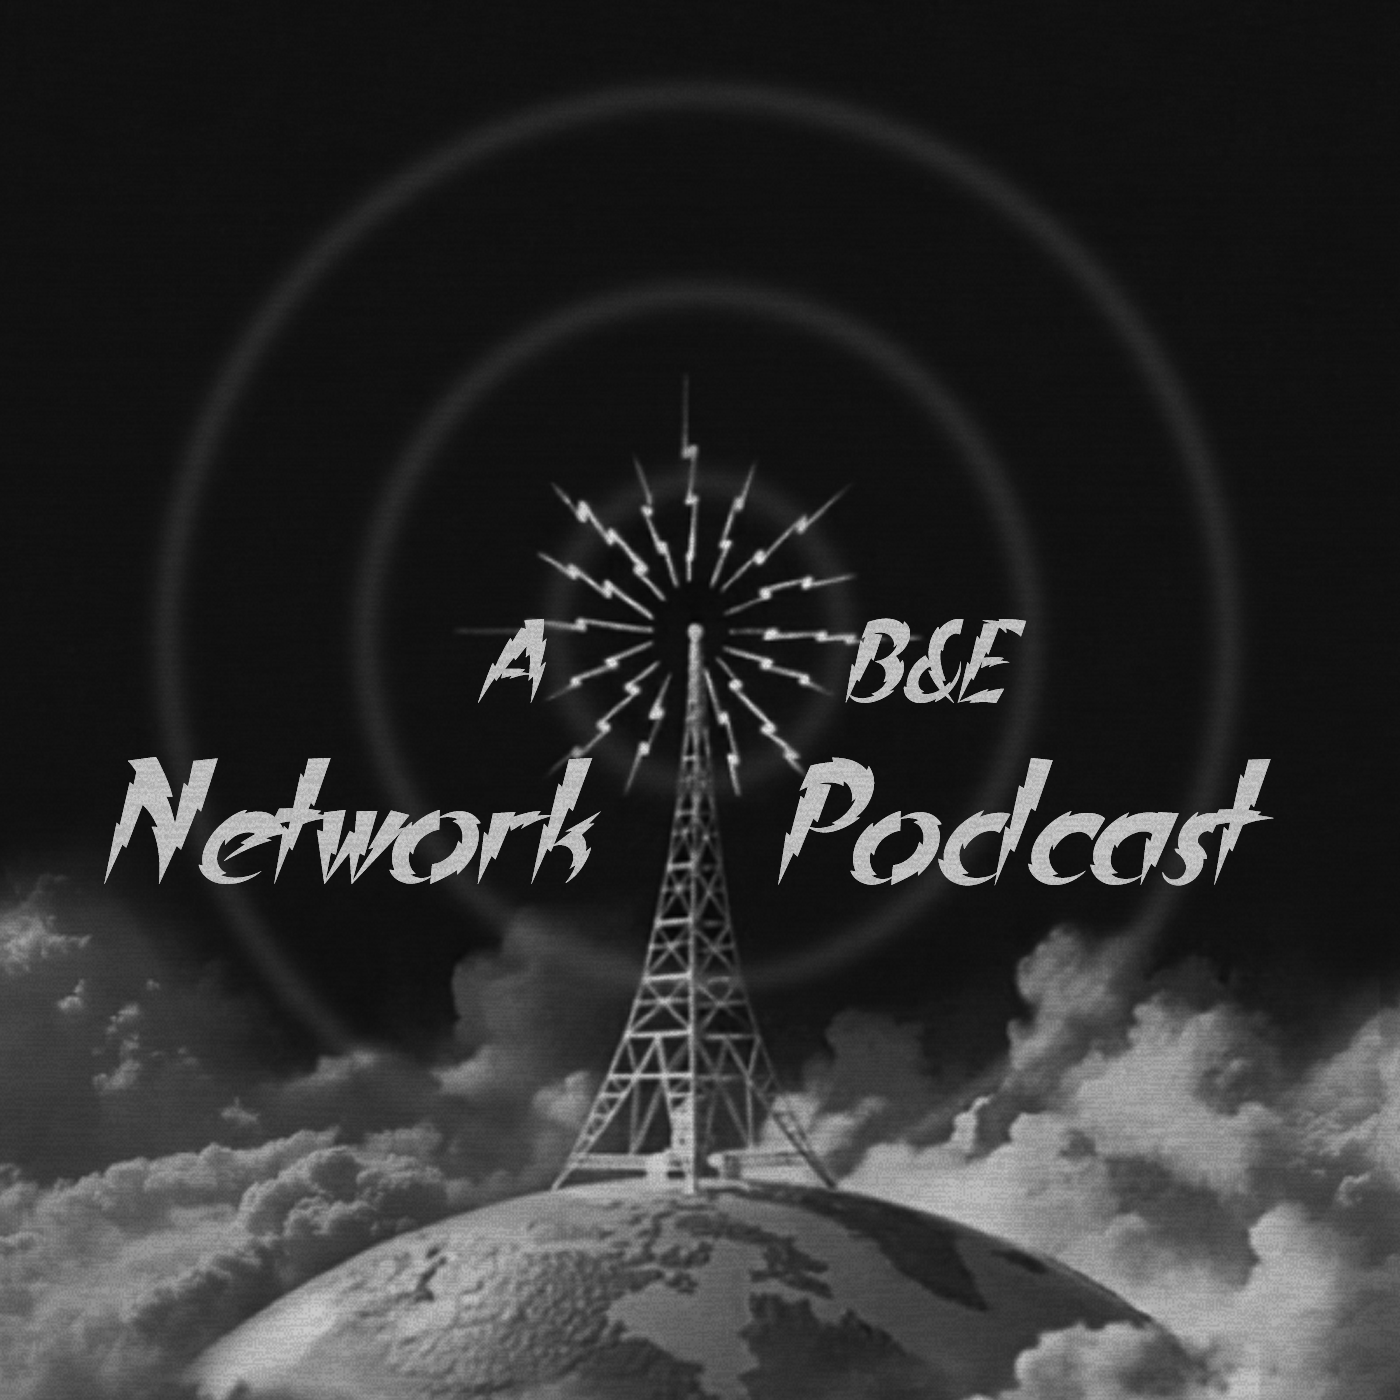 Podcast image